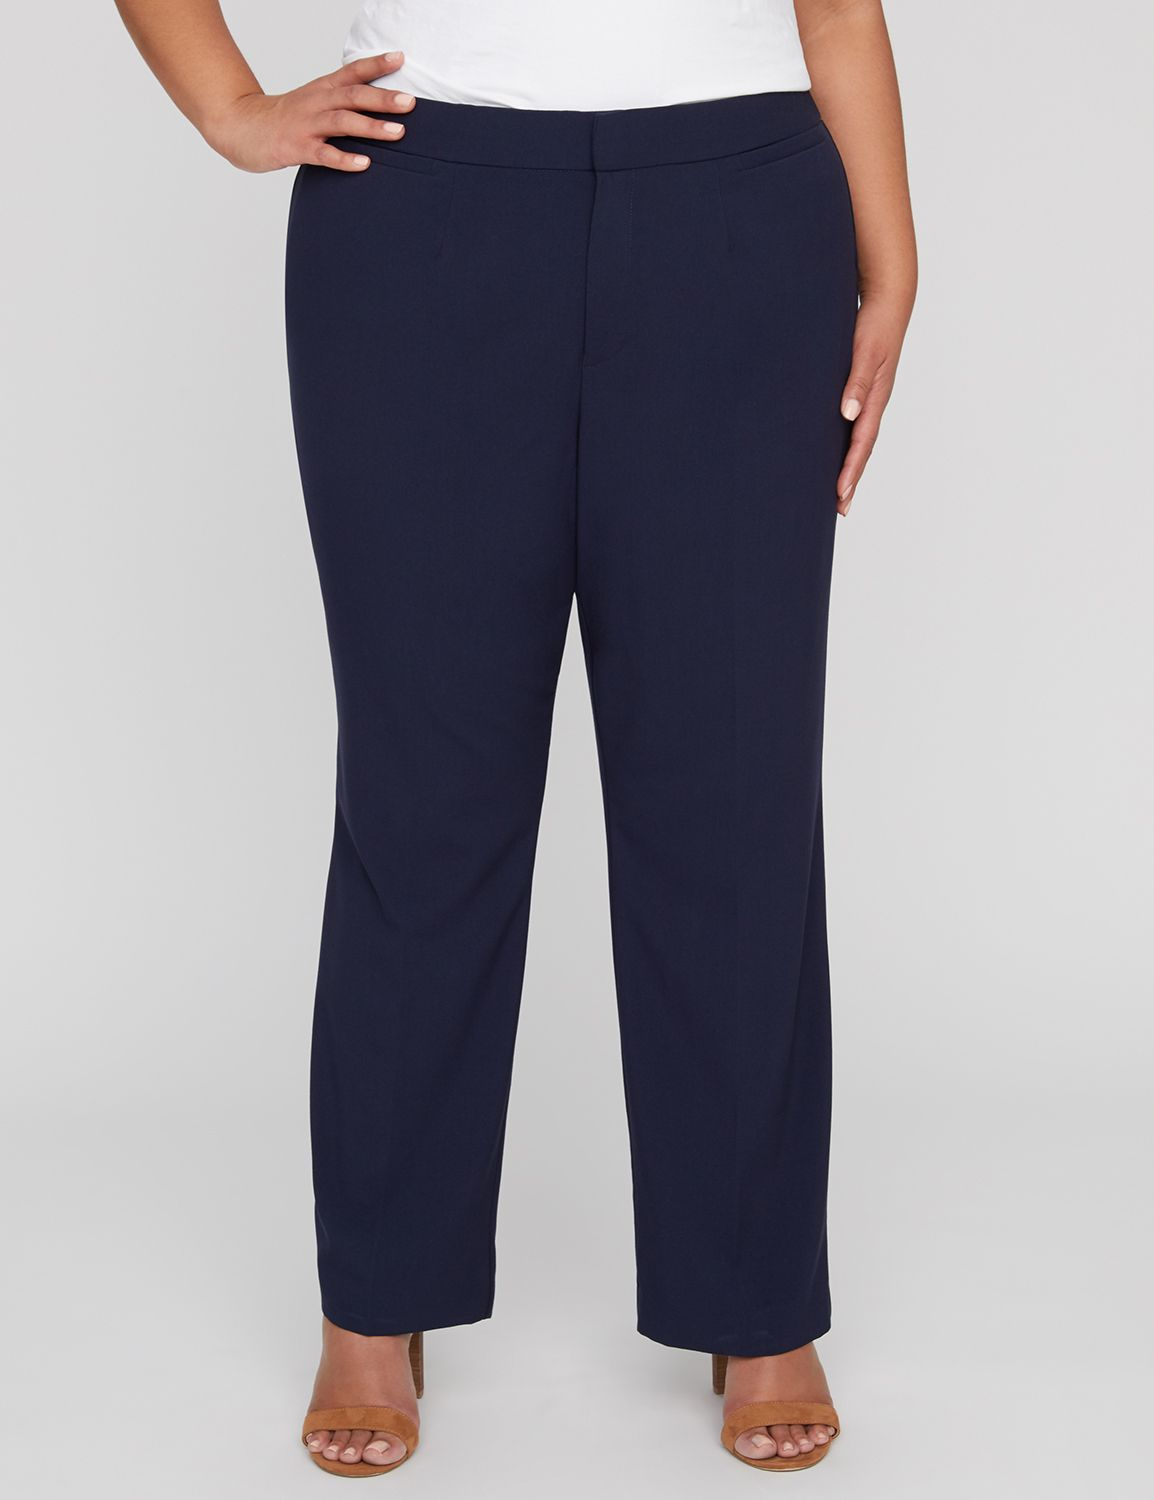 Right Fit Pant (Curvy) Right Fit Pant (Curvy) MP-300043640